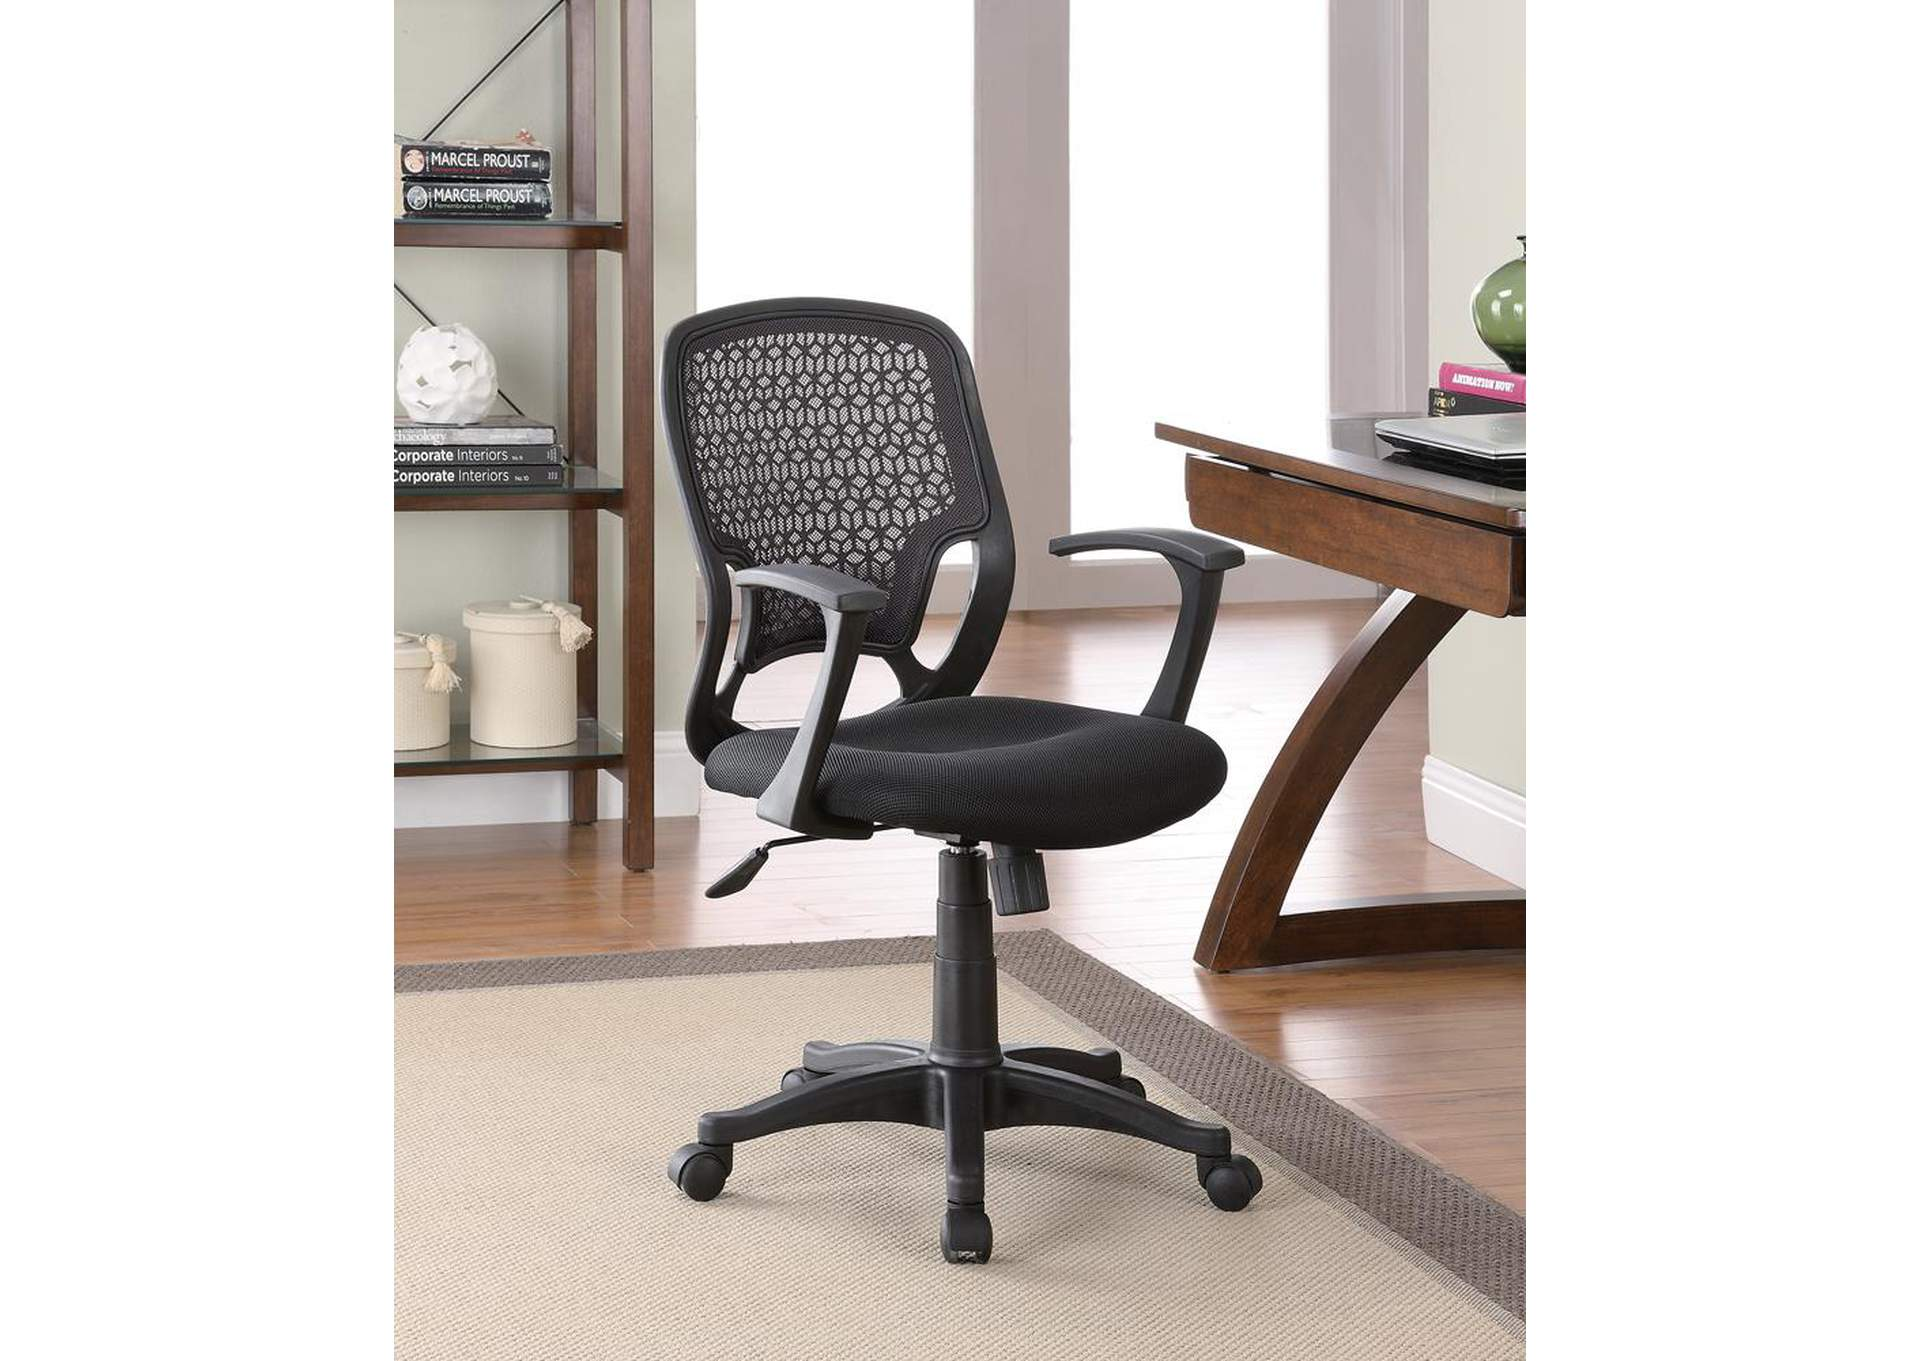 Furniture Liquidators Baton Rouge La Black Office Chair